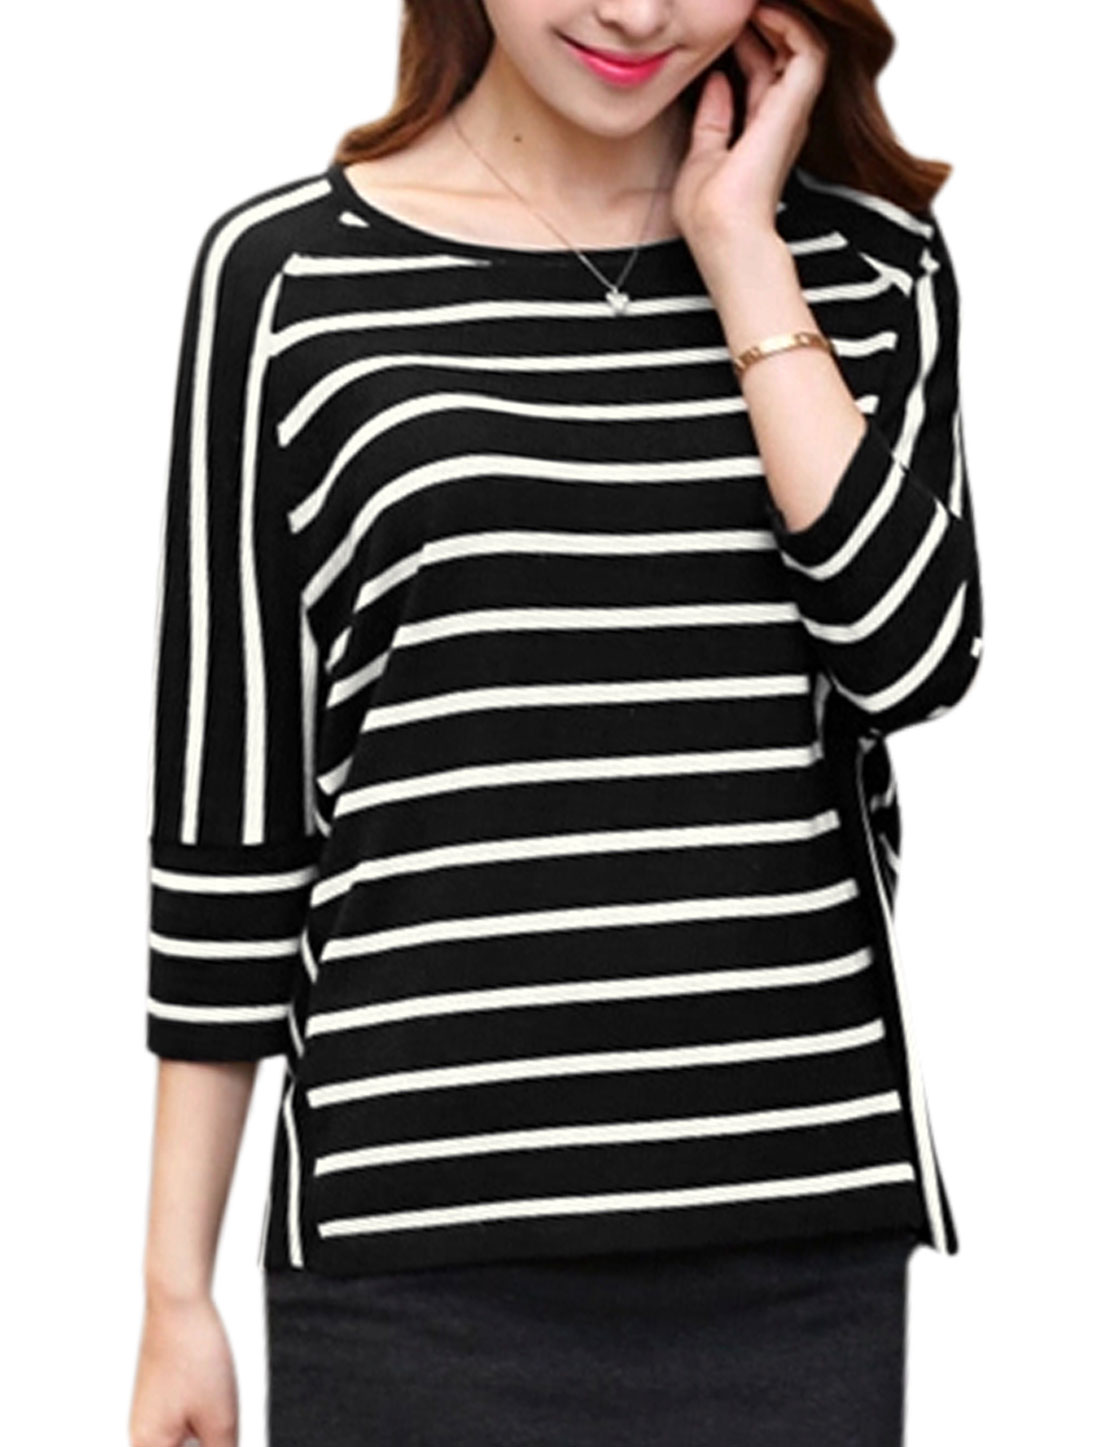 Women Scoop Neck 3/4 Sleeves Stripes Casual Shirt Black XS